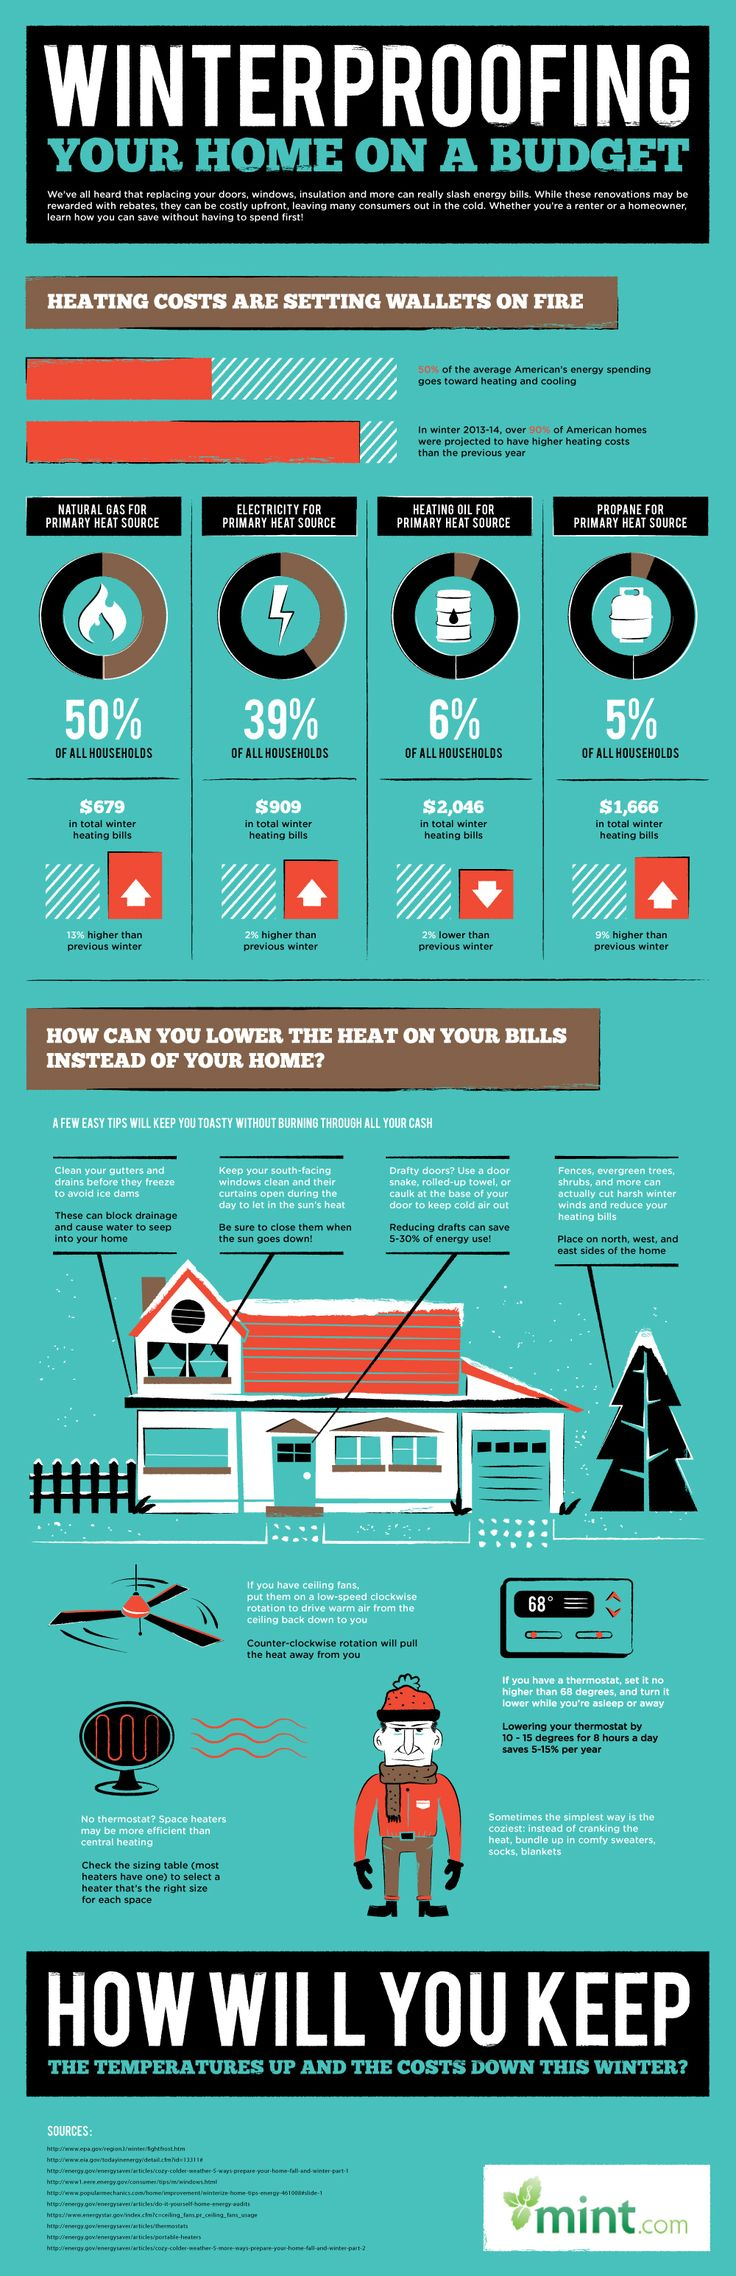 Winterproofing Your Home on a Budget: After you get us to install a highly efficient mini-split or furnace you can use these tips to be even more efficient! http://aabbottferraro.com/